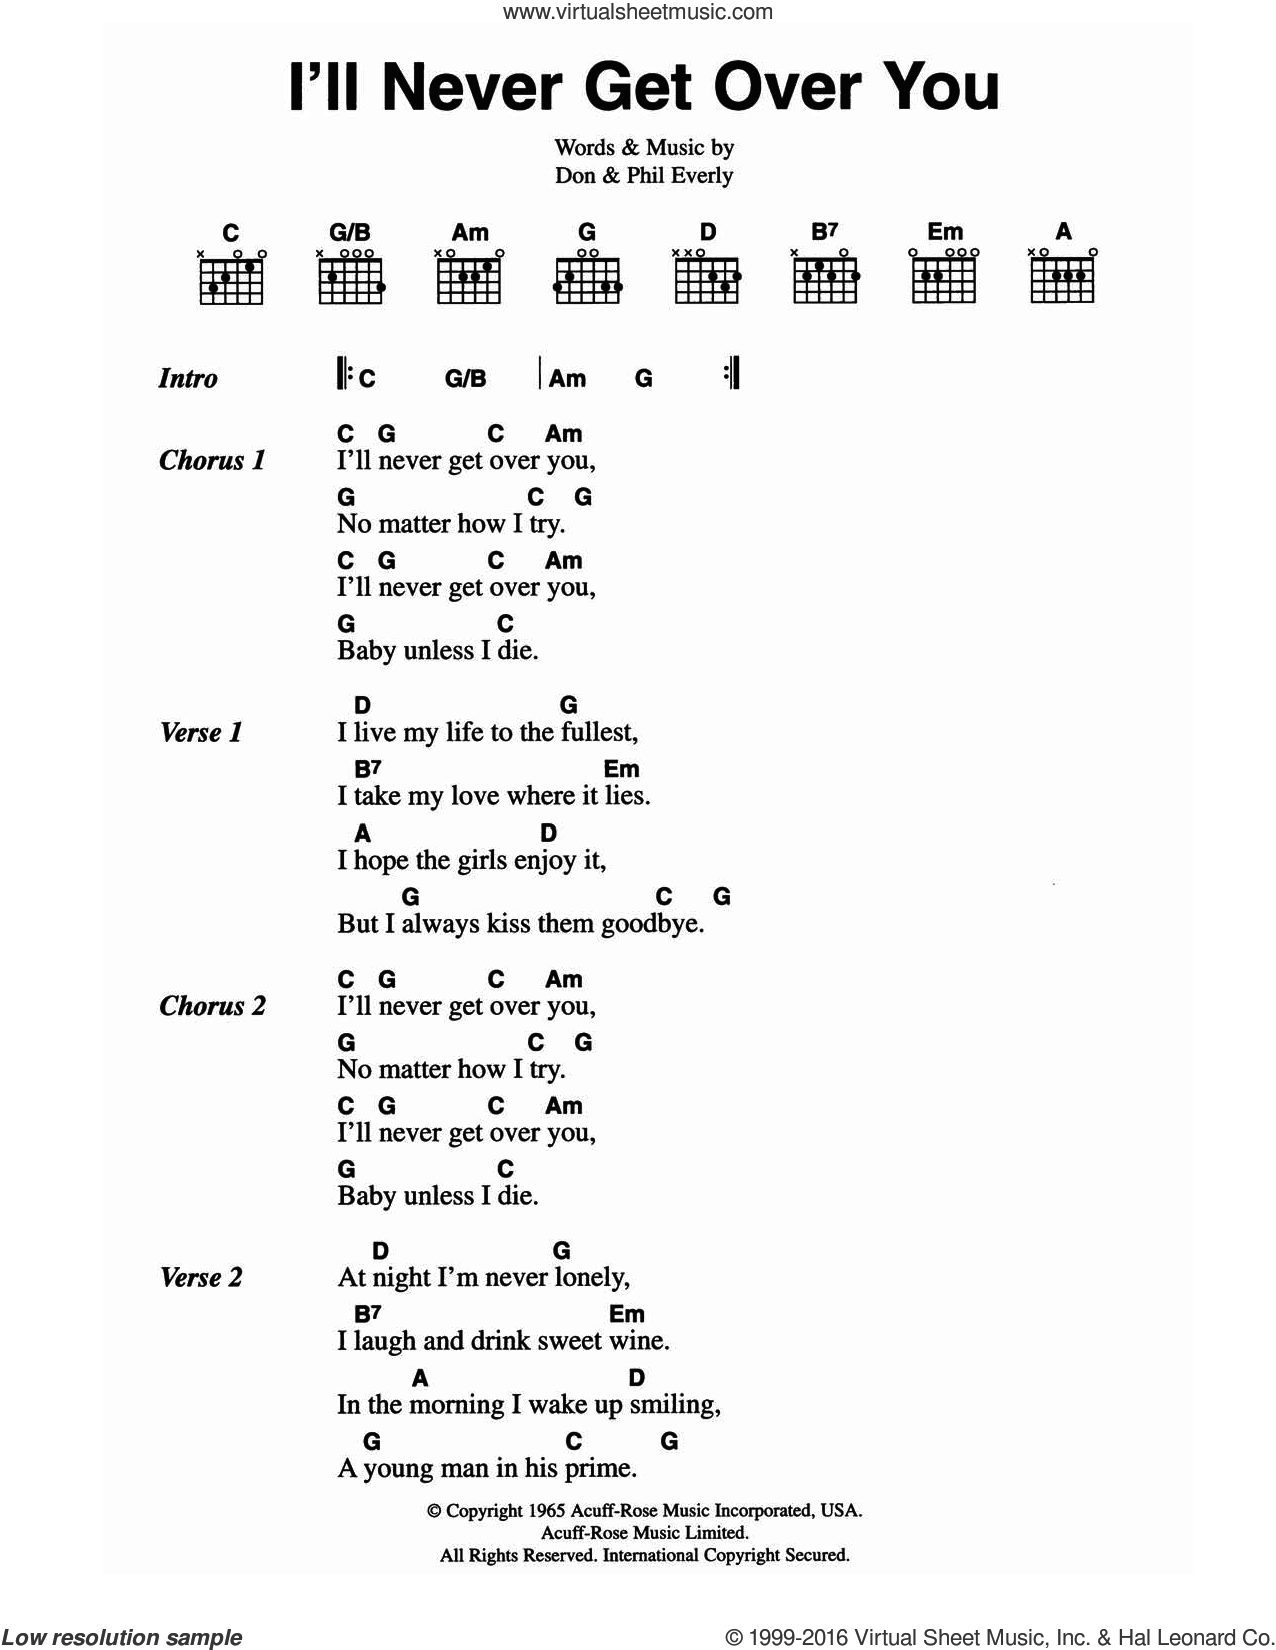 I'll Never Get Over You sheet music for guitar (chords) by The Everly Brothers, Don Everly and Phil Everly, intermediate skill level